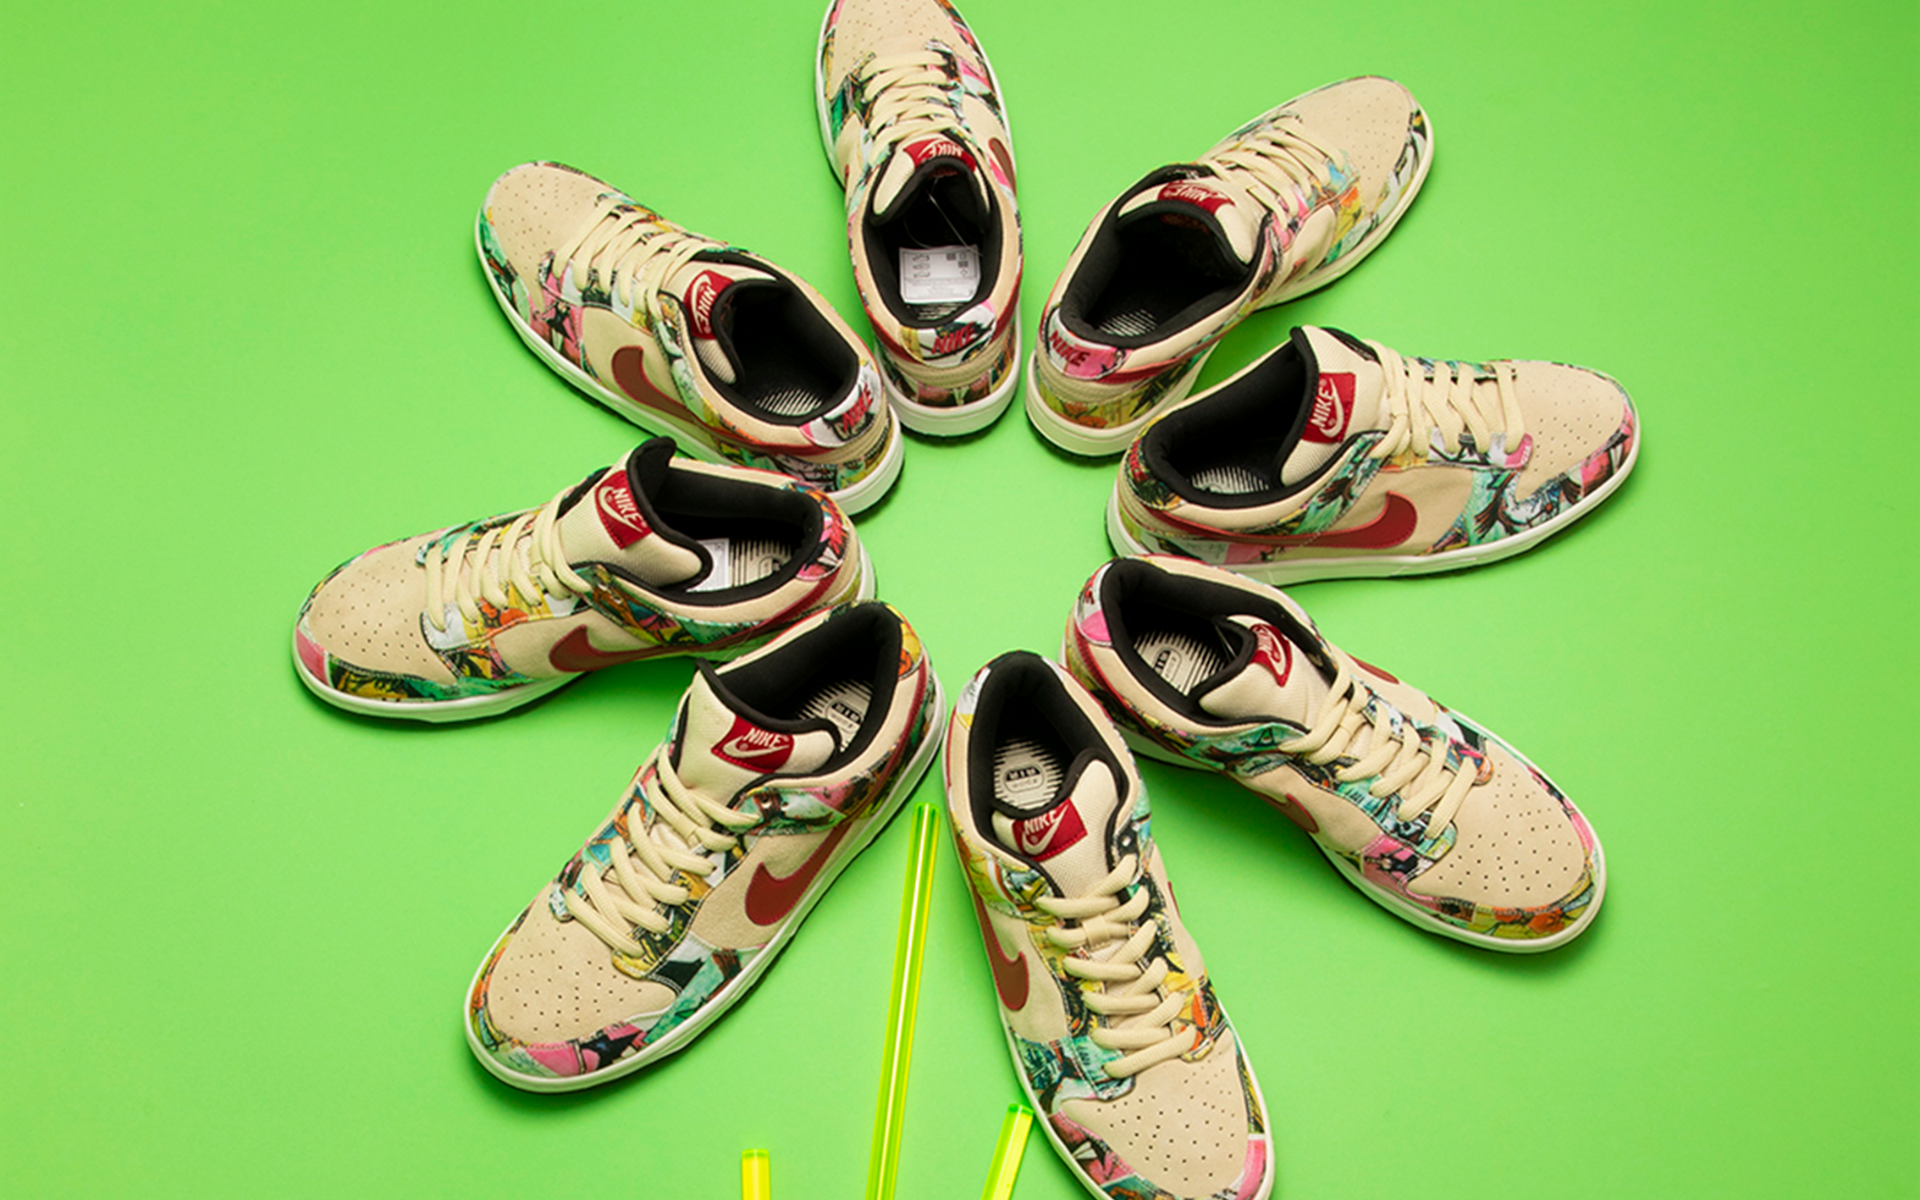 Ultra-Rare Artist-Designed Nike Sneakers On Auction At Sotheby's